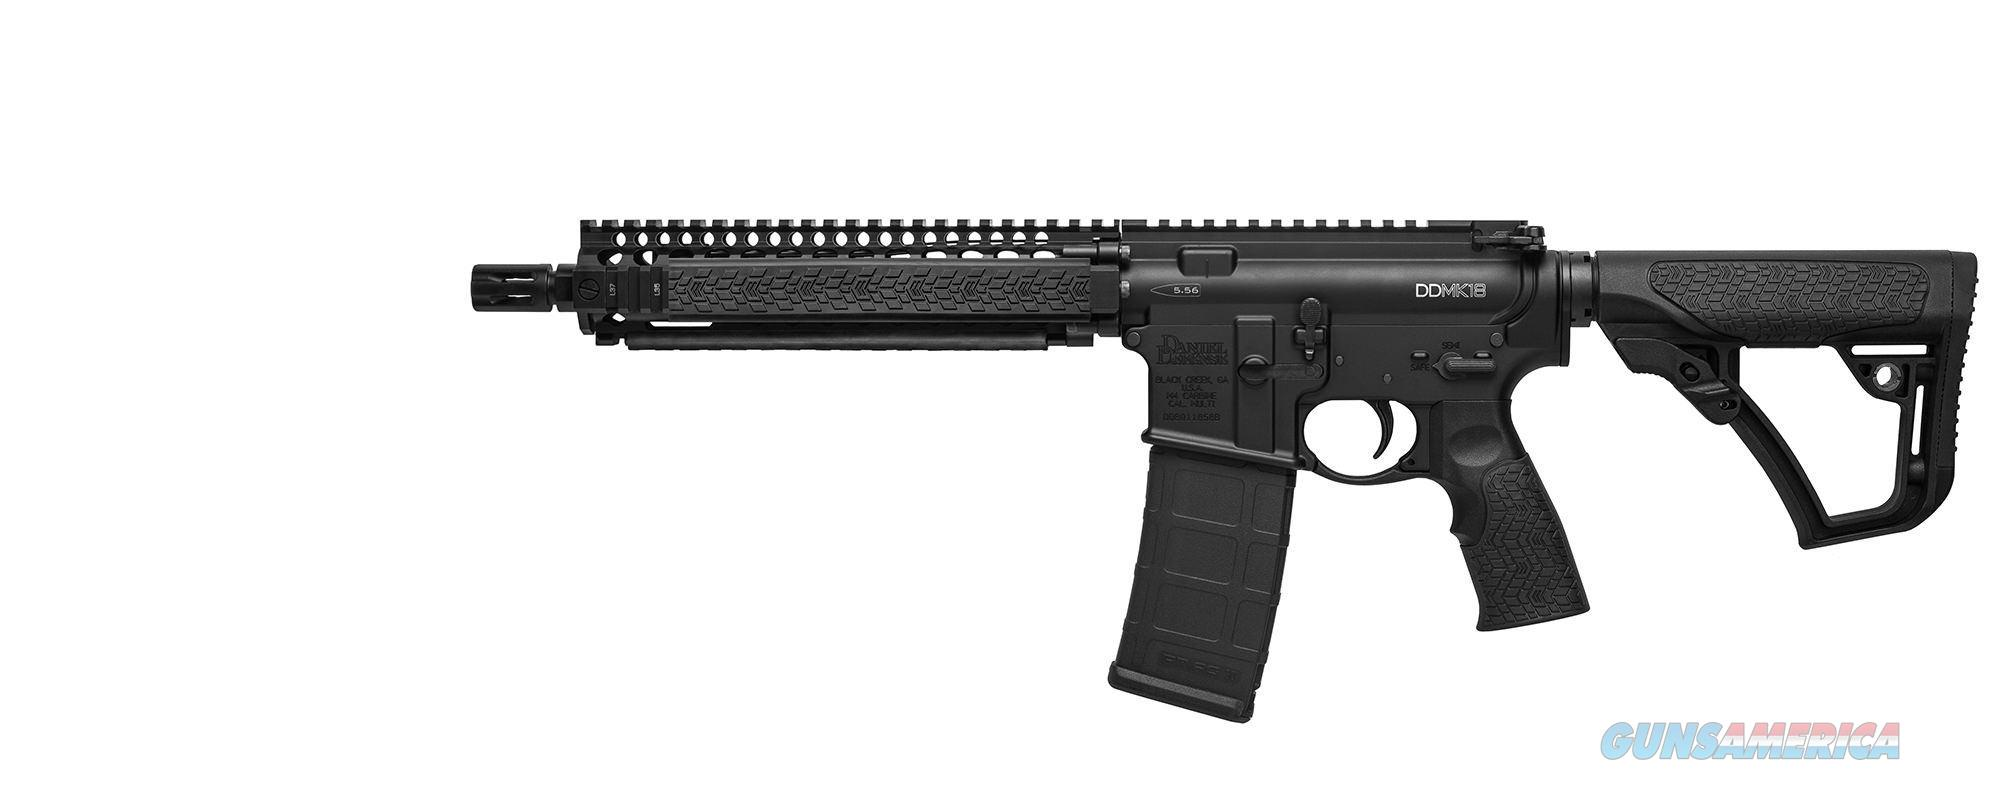 SALE - CALL for DEAL.. Daniel Defense Black MK18 SBR - Use what they Use (M4 AR15)  Guns > Rifles > Daniel Defense > Complete Rifles